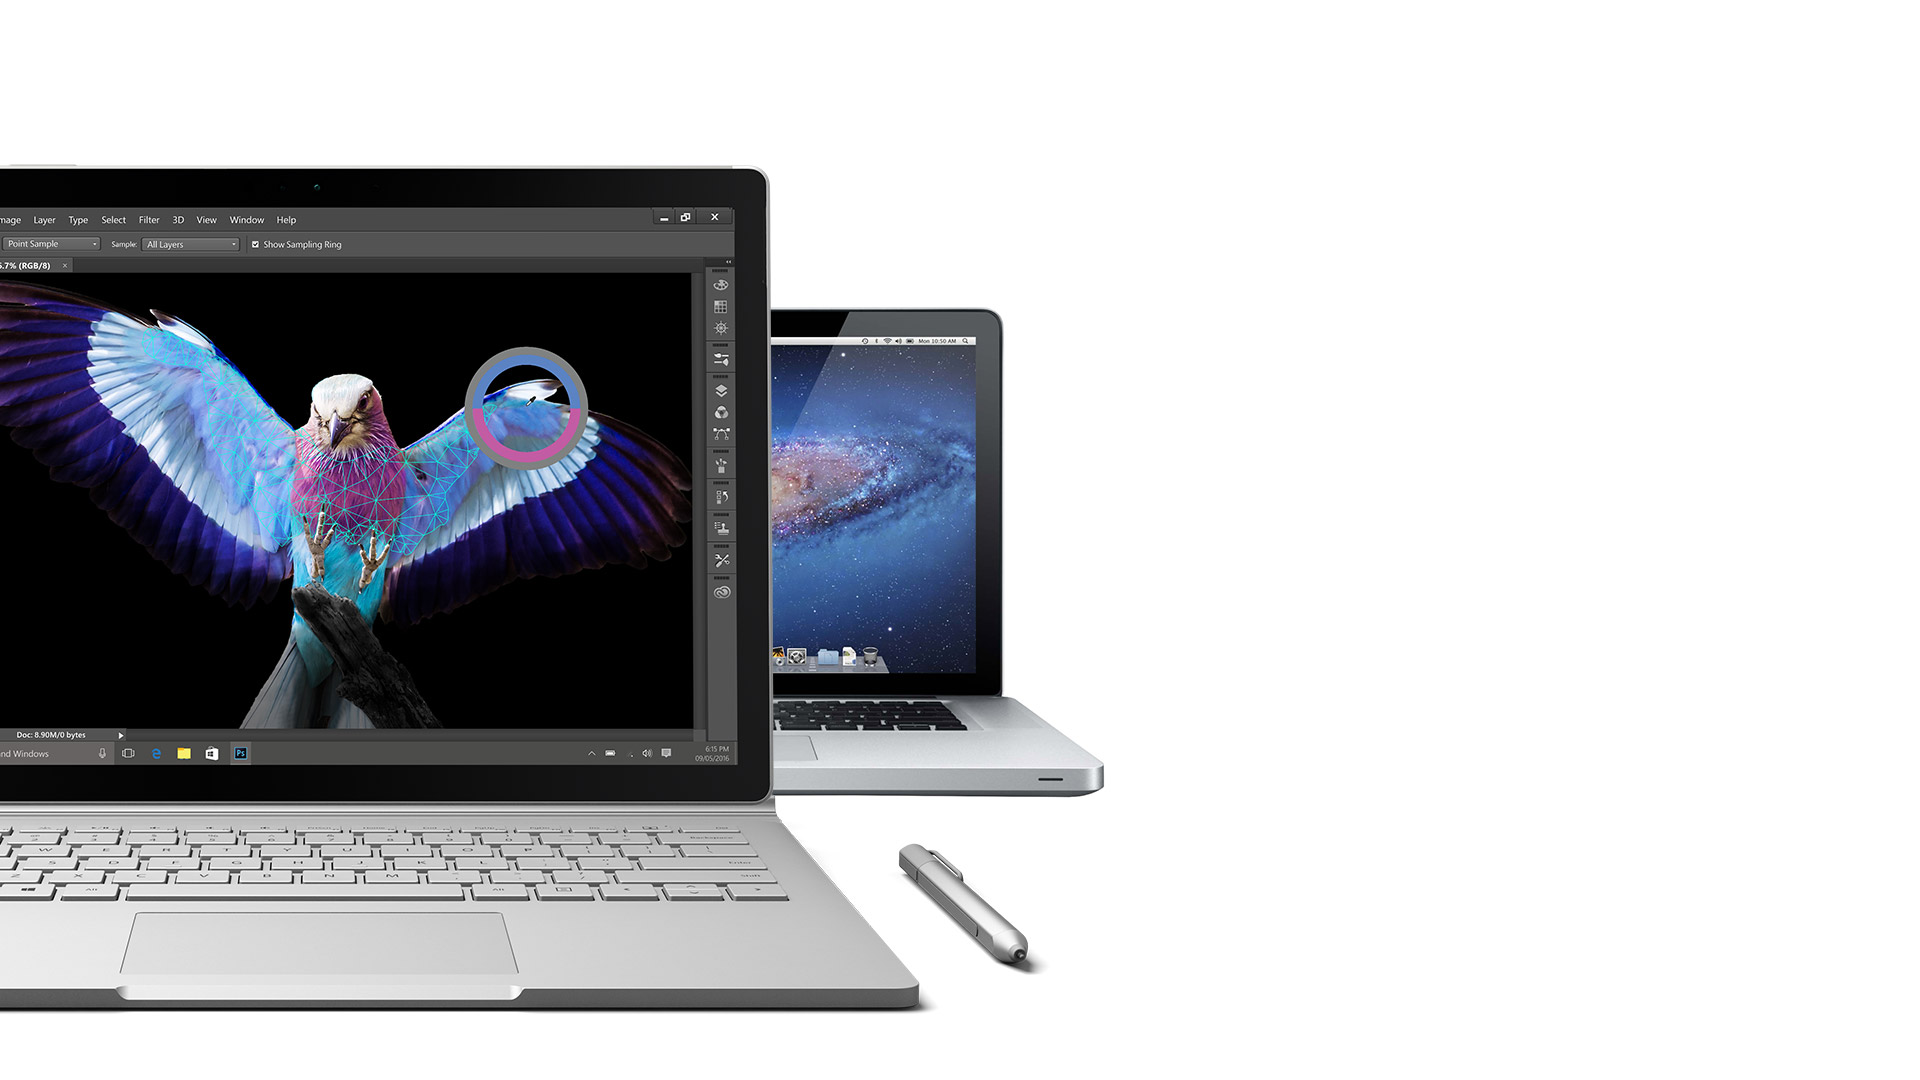 Surface Book open facing front with Surface Pen and a MacBook Pro in the background